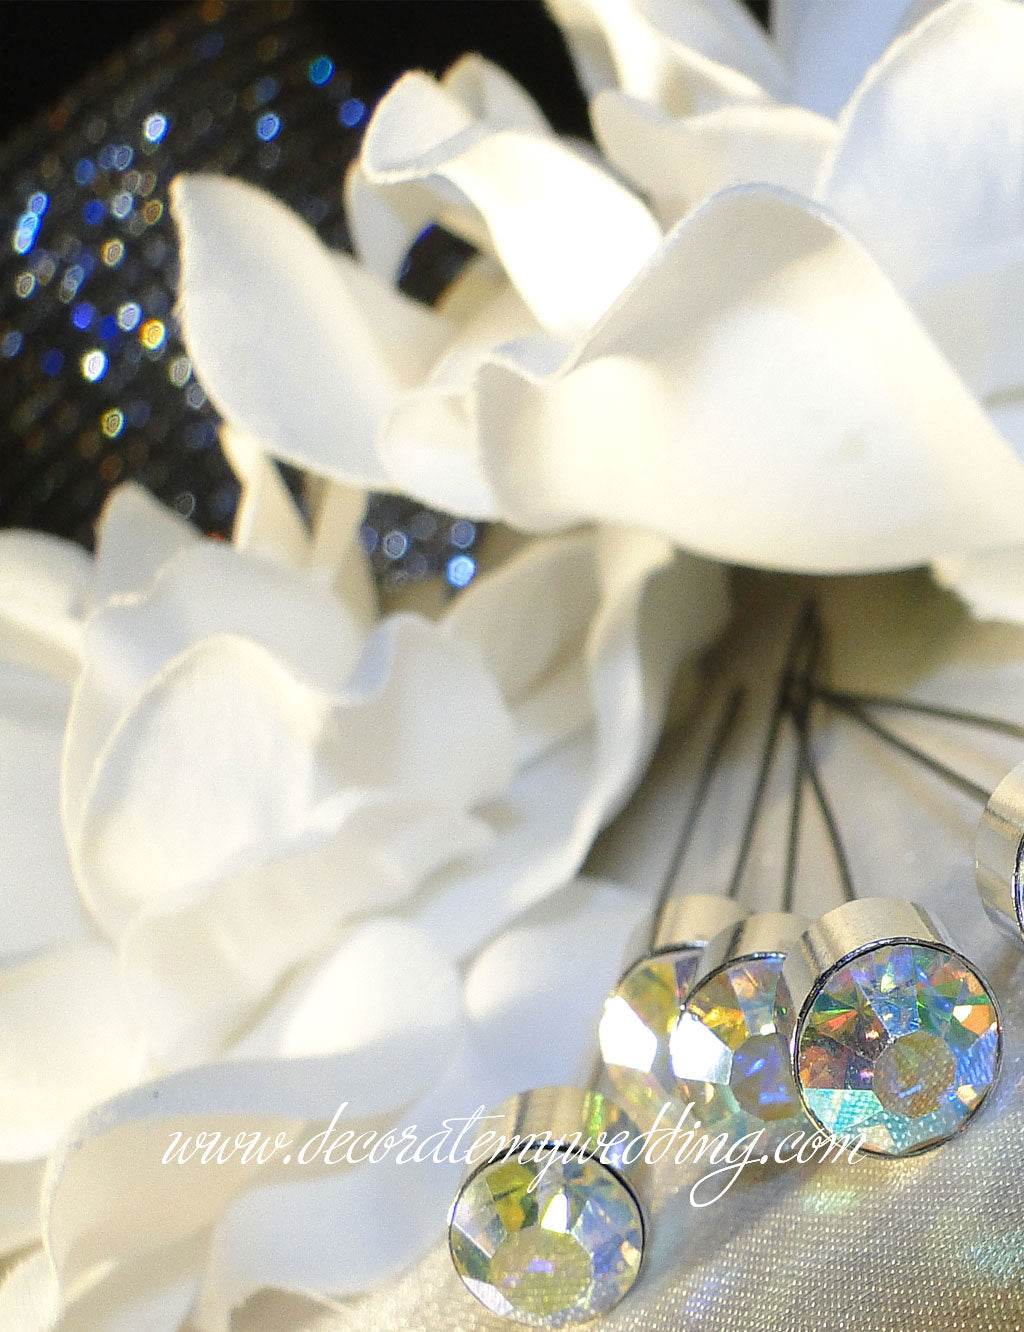 These sparkling clear iridescent crystal beads are perfect bouquet bling for the bride's bouquet.